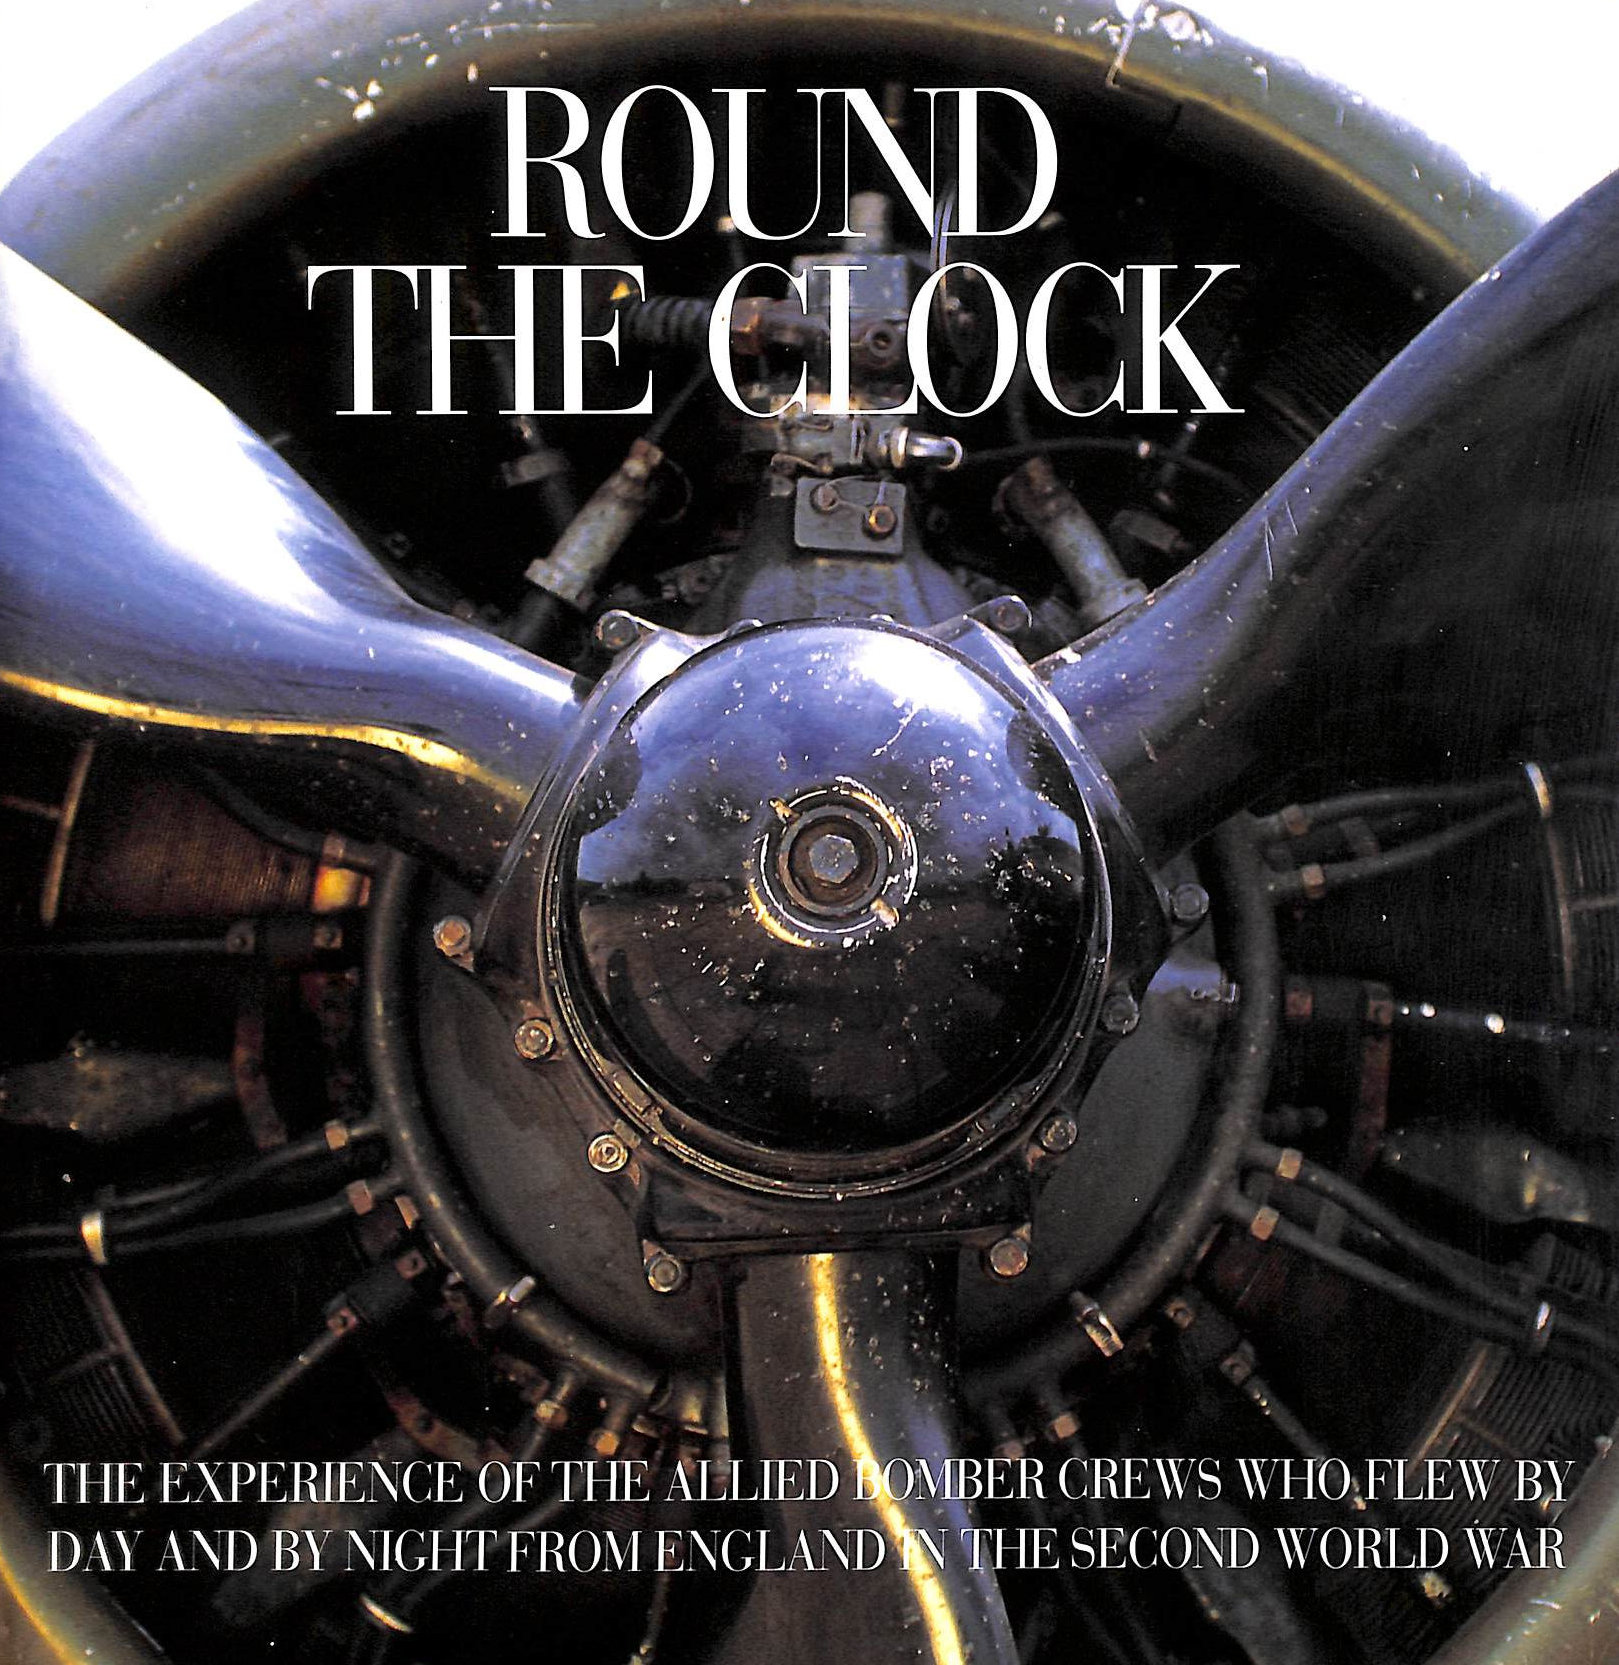 Image for Round the Clock: The Experience of the Allied Bomber Crews Who Flew by Day and by Night from England in the Second World War